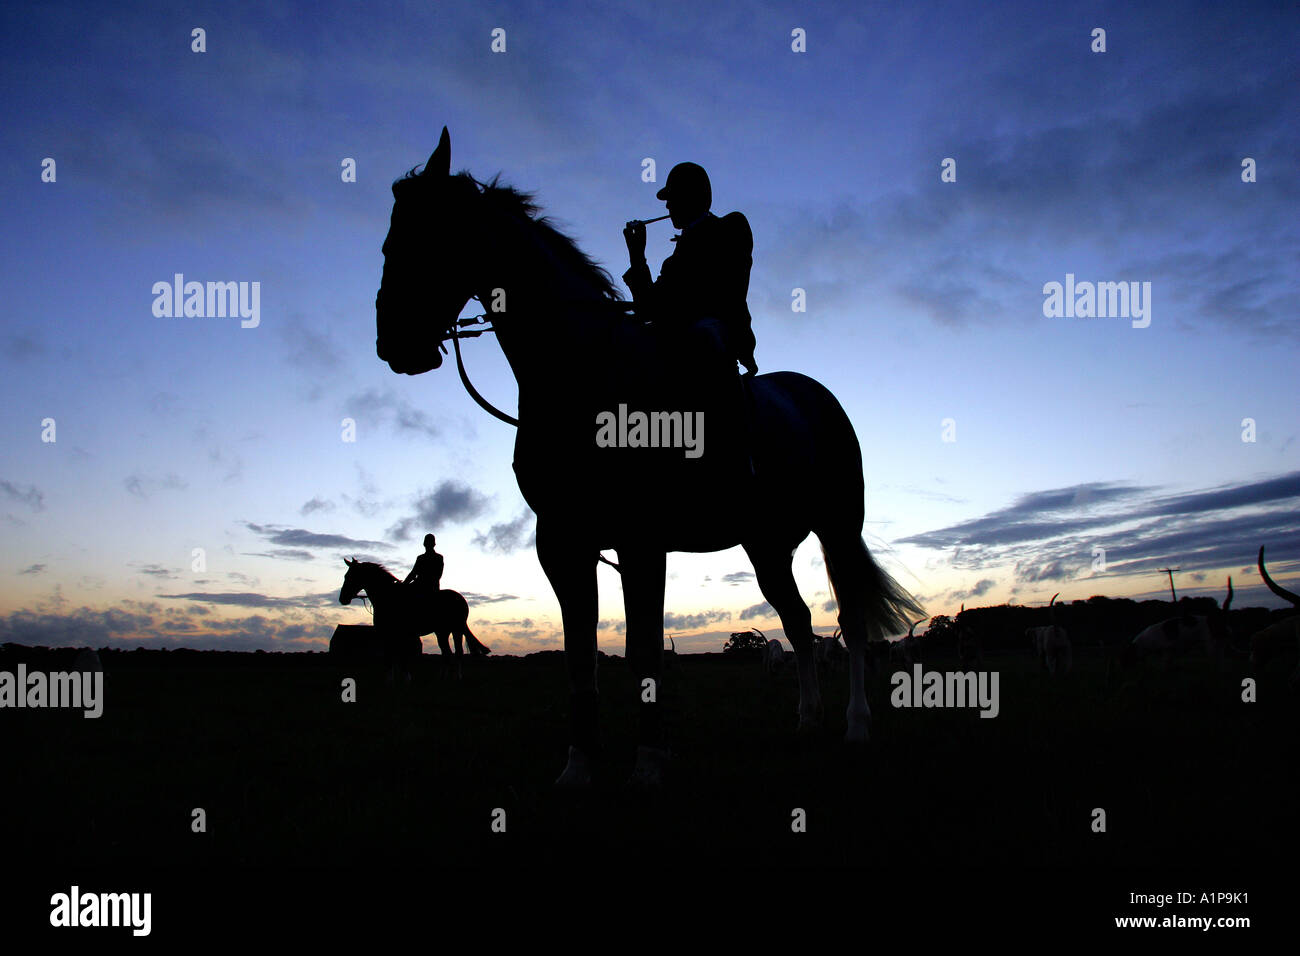 Silhouette of huntsmen sounding the horn to signal the start of a dawn hunt in Gloucester UK - Stock Image